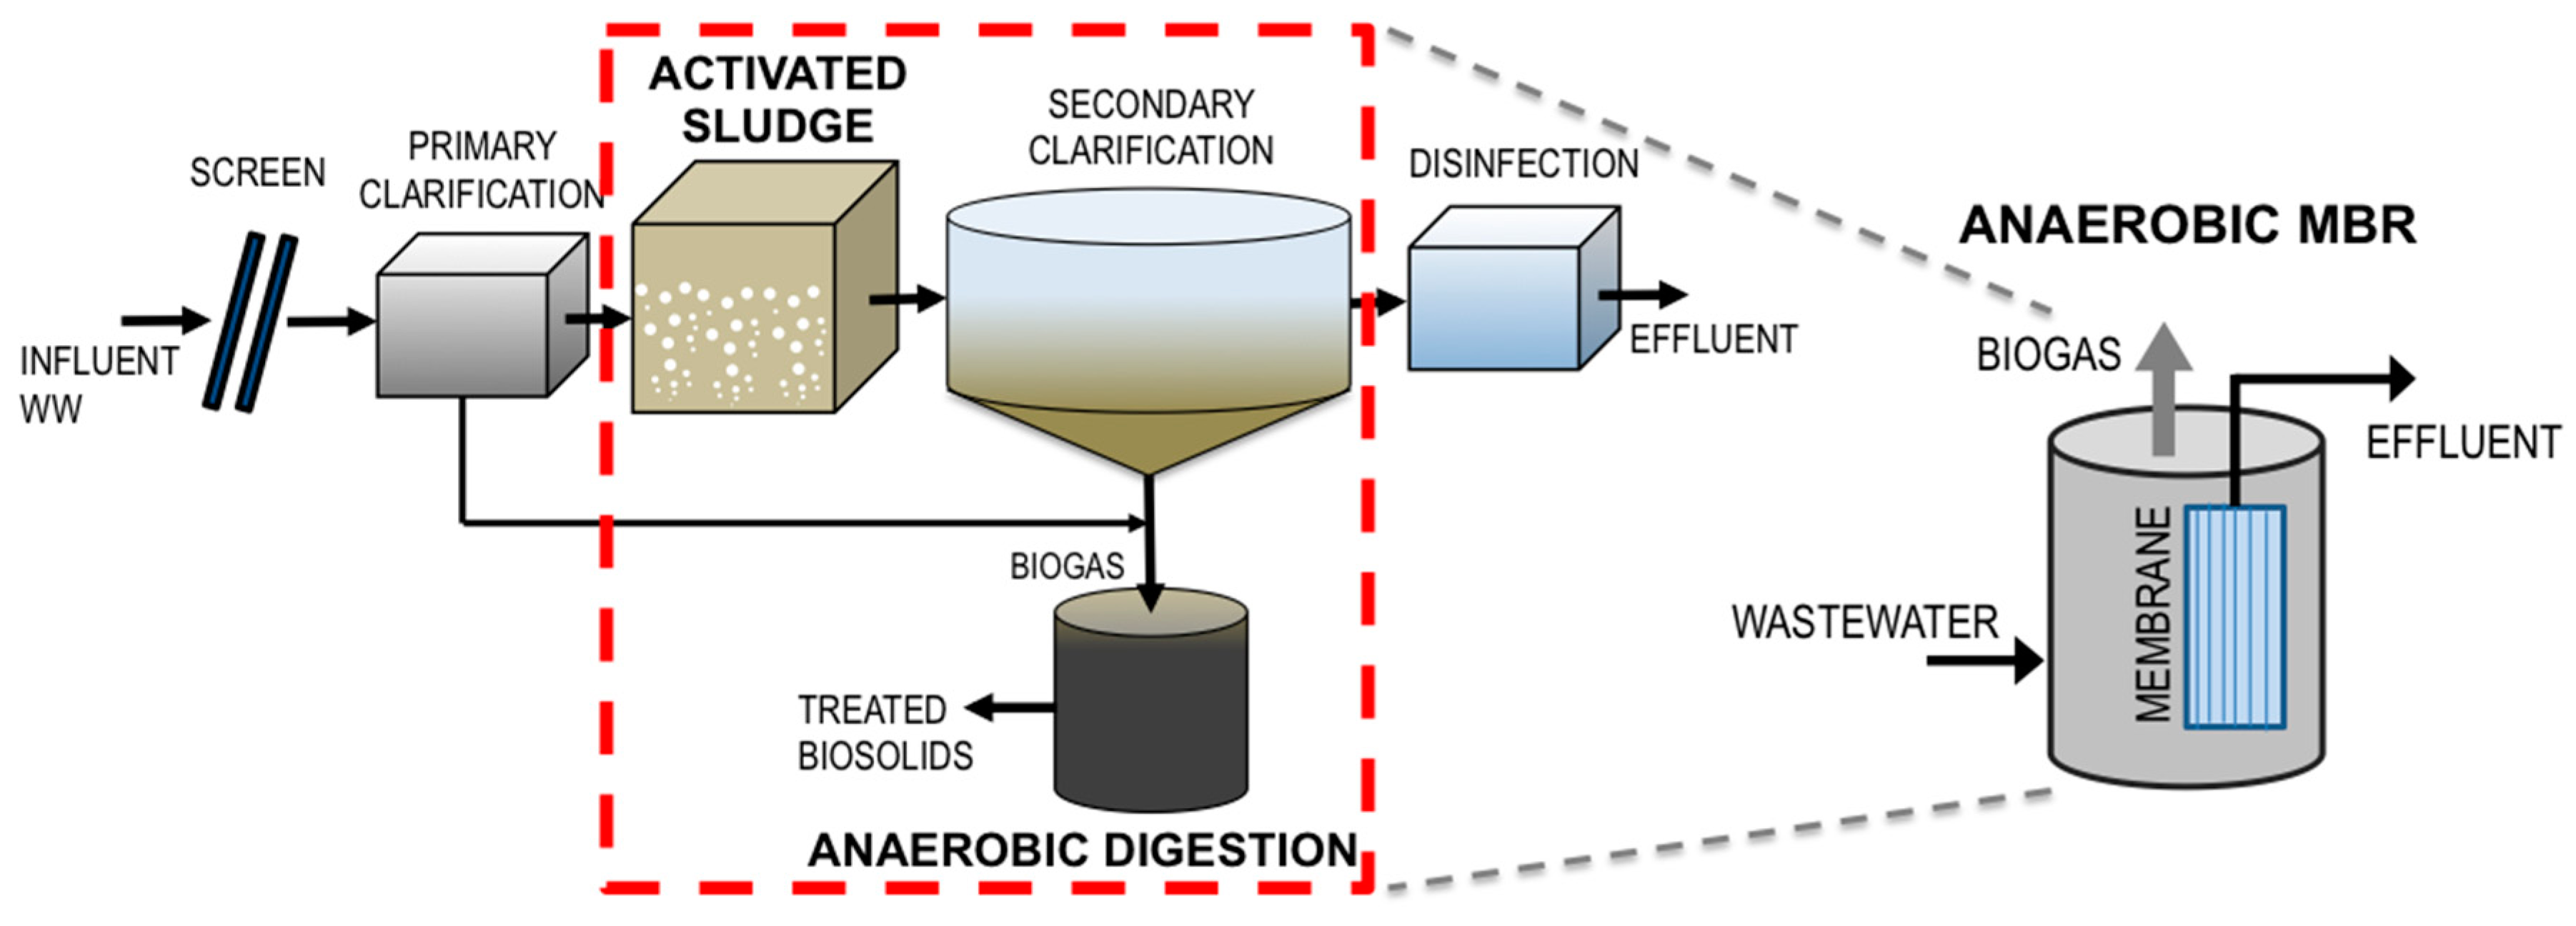 bioreactors and use of bioreactors in sewage treatment biology essay Devarakonda srinivasa rao of acharya nagarjuna university, guntūr with  municipal sewage problems are  a lab scale submerged attached growth bioreactors.